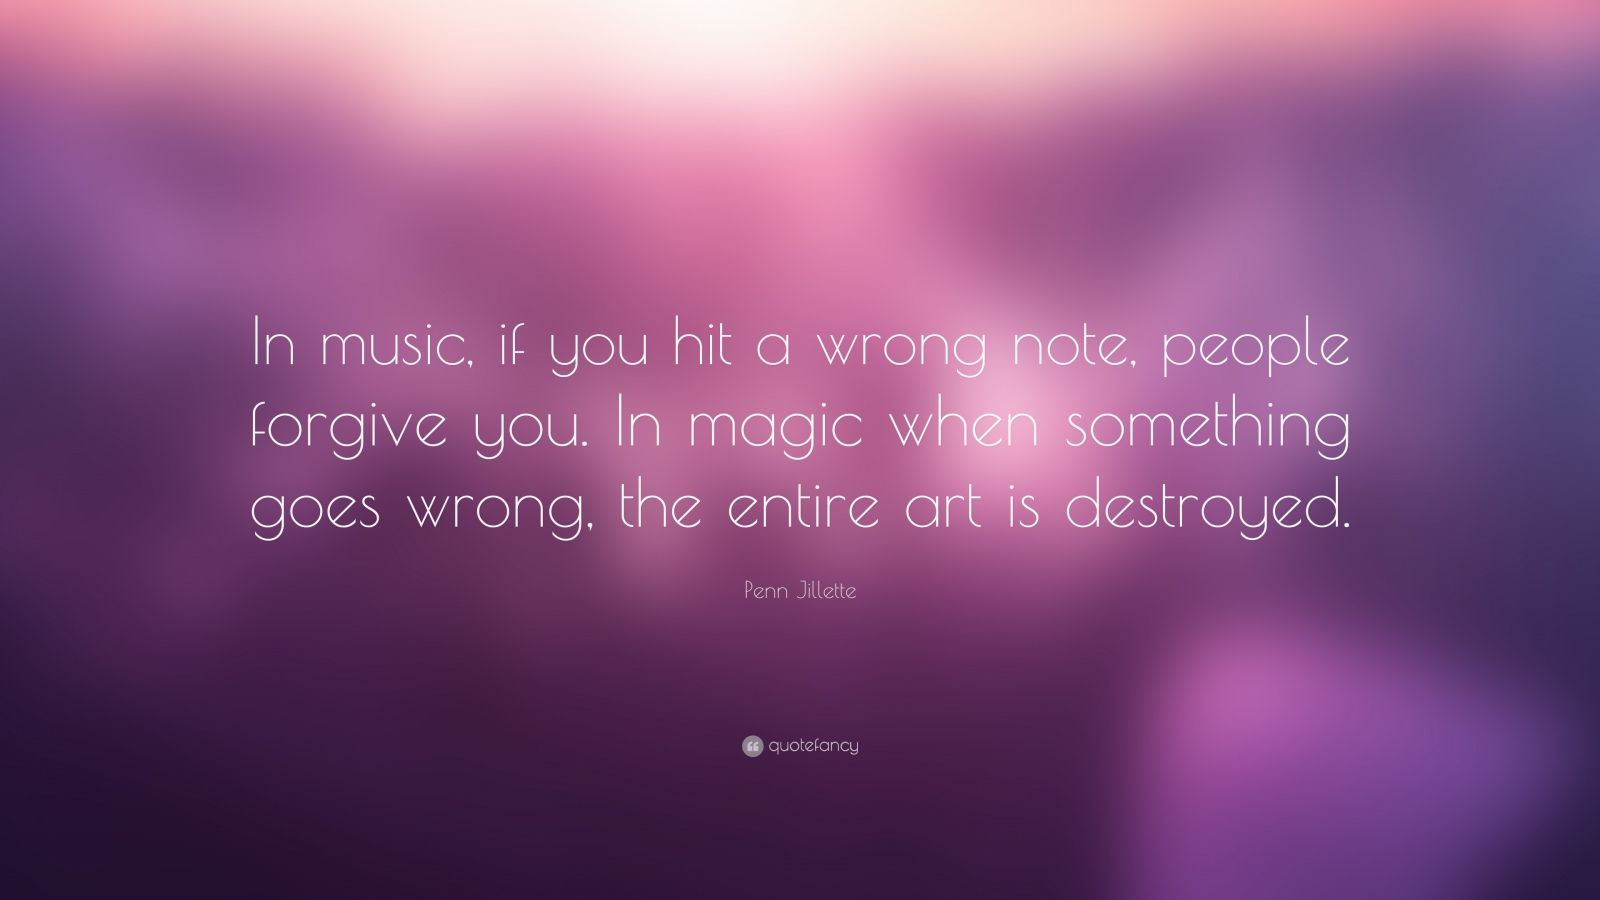 """Penn Jillette Quote: """"In music, if you hit a wrong note, people forgive you. In magic when something goes wrong, the entire art is destroyed."""""""